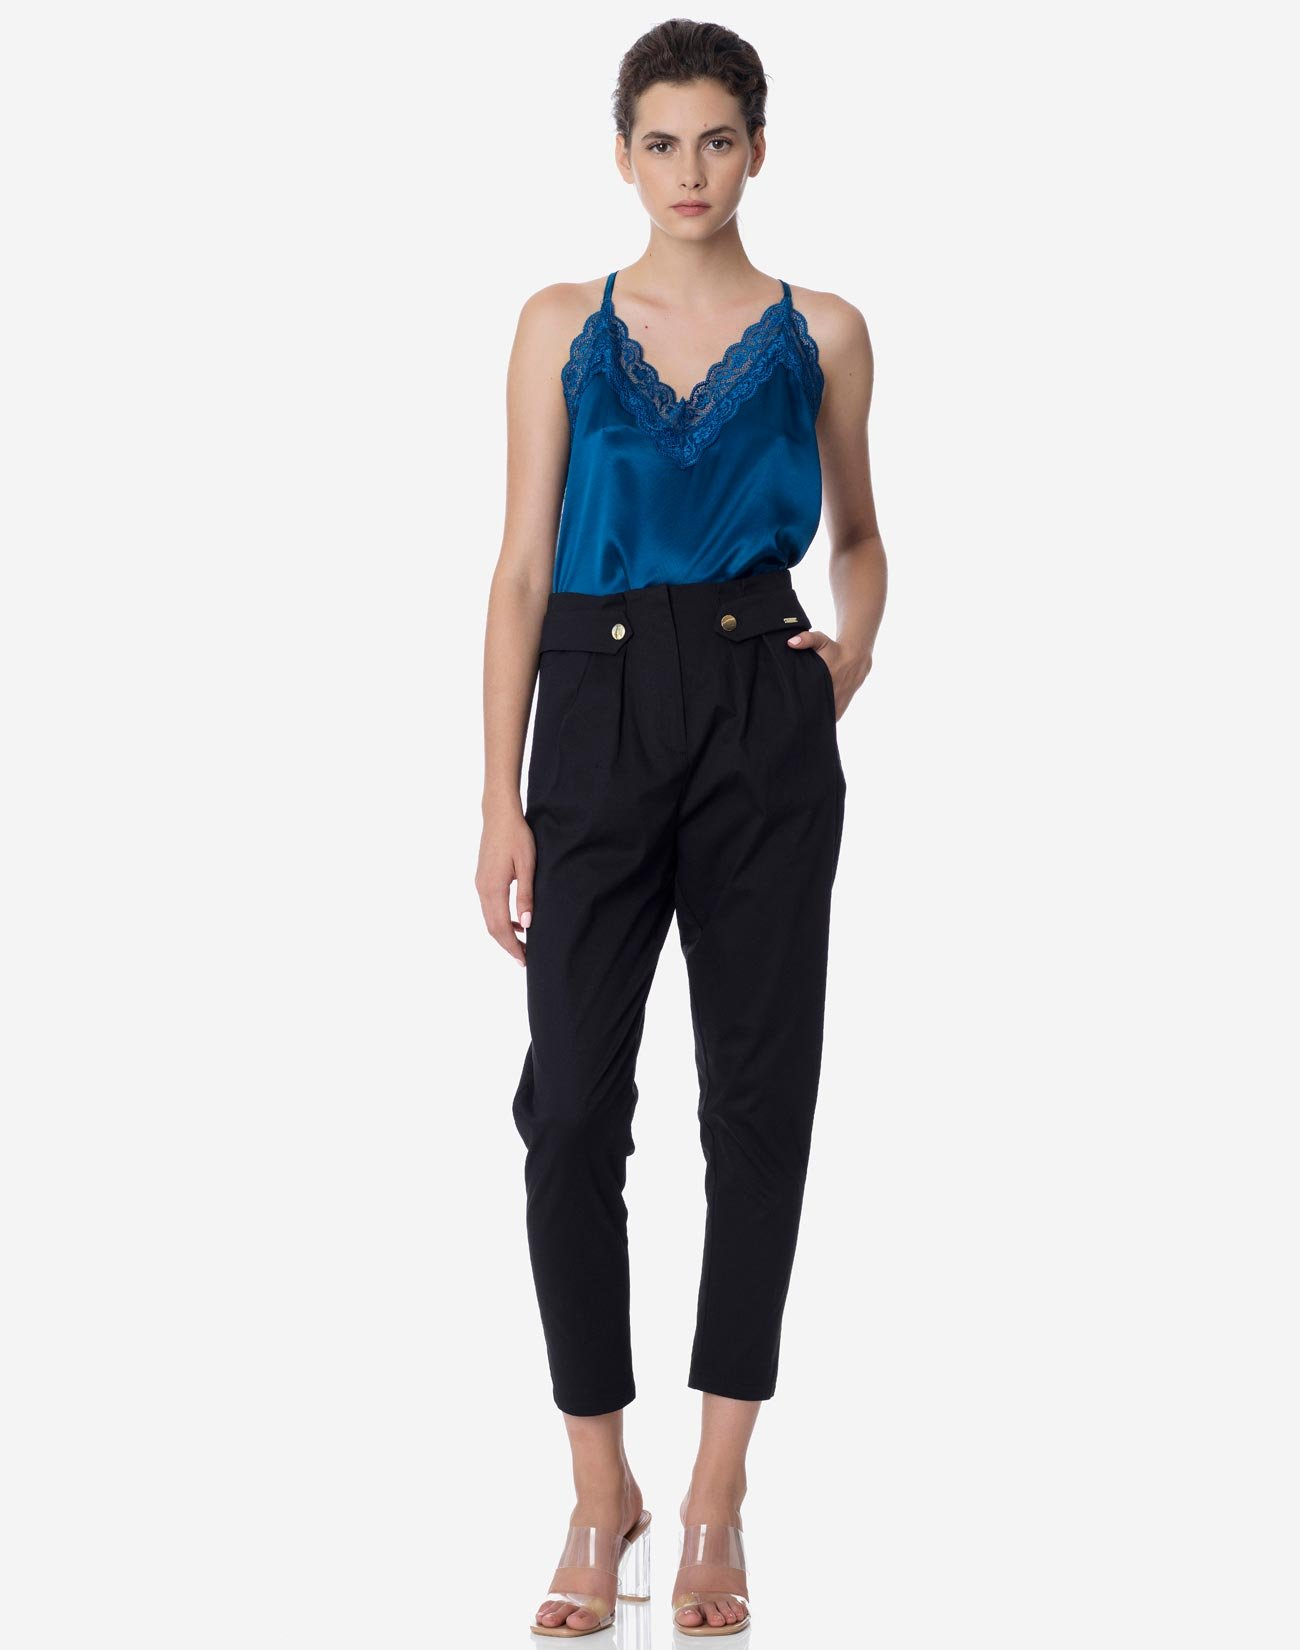 High-waist trousers with buttons